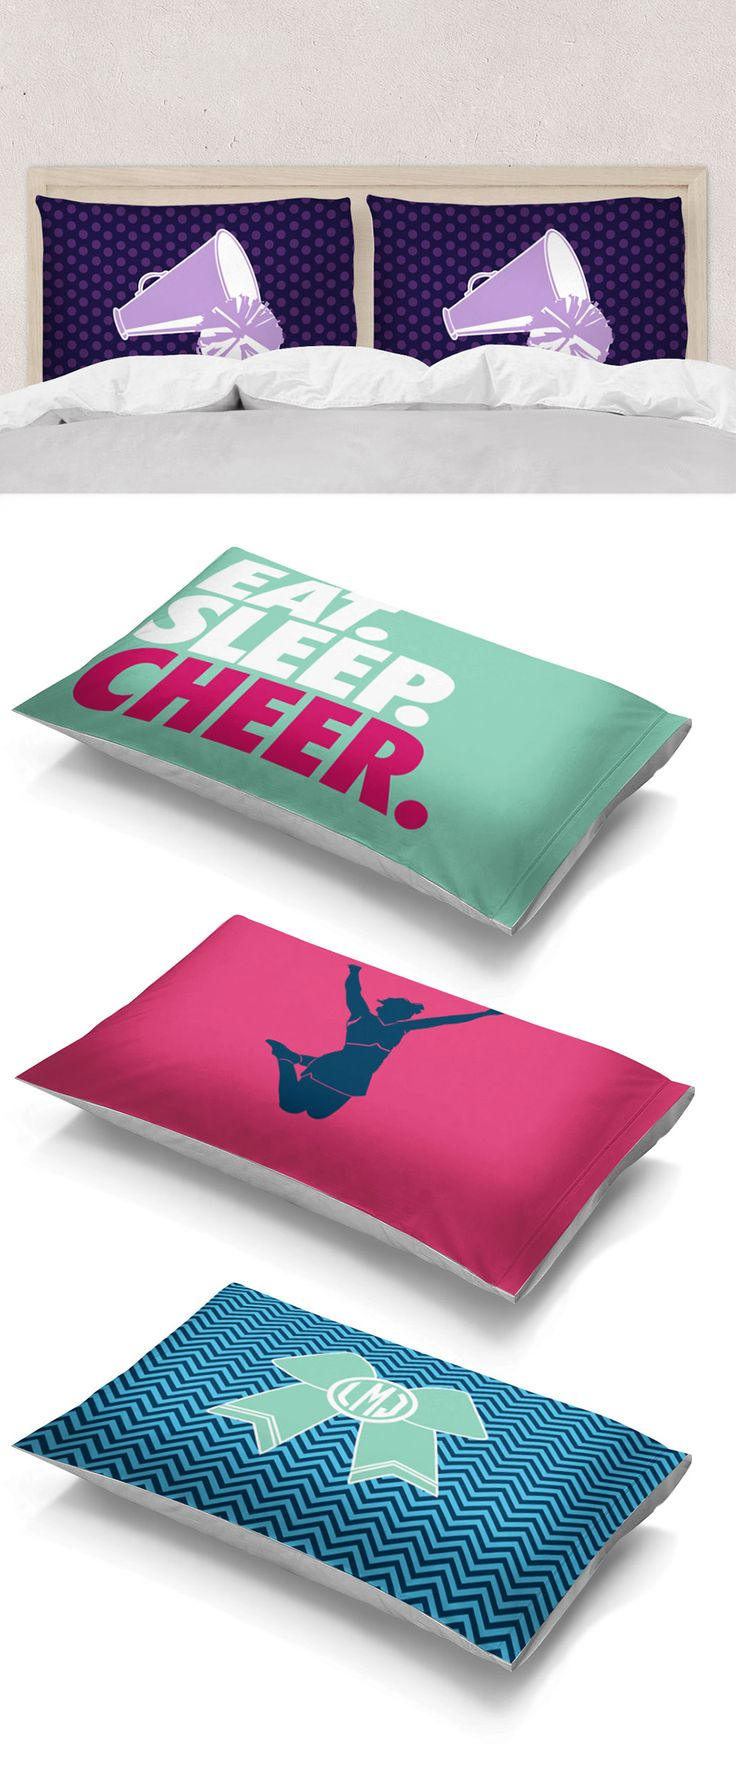 Cheerl pillowcases -- the perfect addition to any cheerleader's bedroom! Treat them to a custom or personalized pillow to add to their bed, we know they'll be doing back flips!